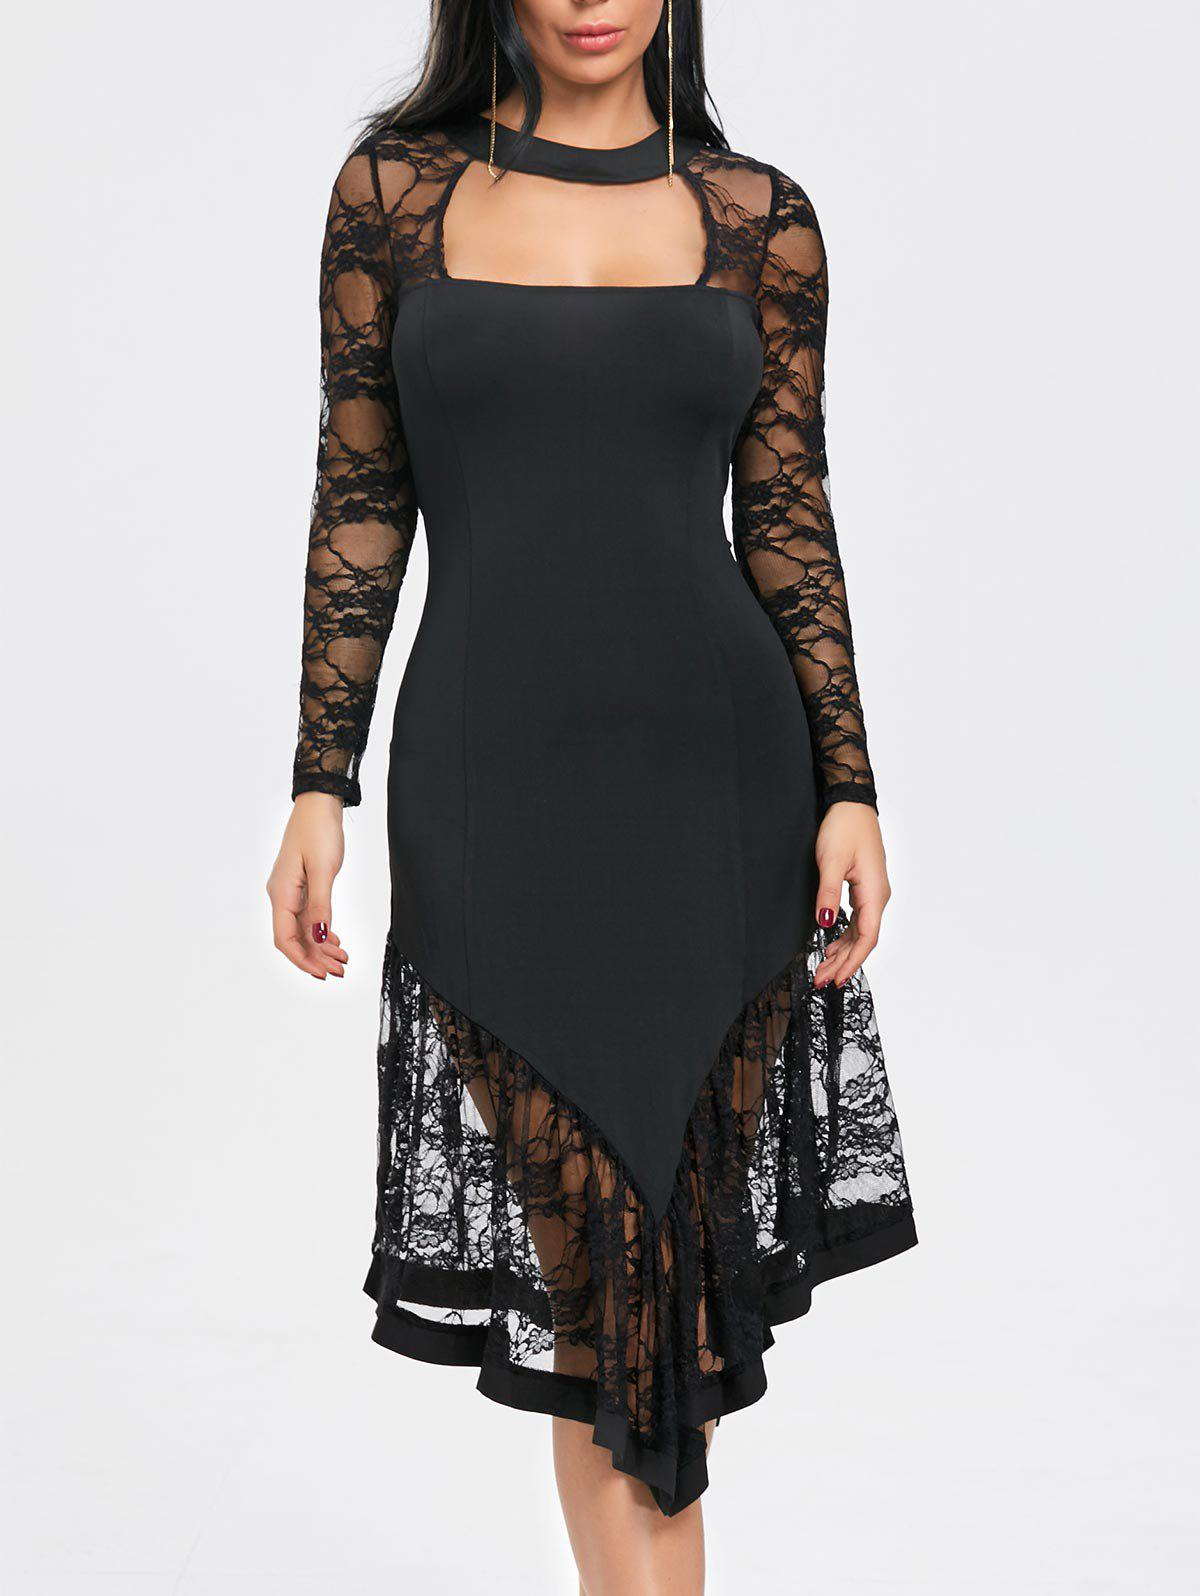 Lace Panel Cut Out Asymmetrical Club Dress - BLACK L